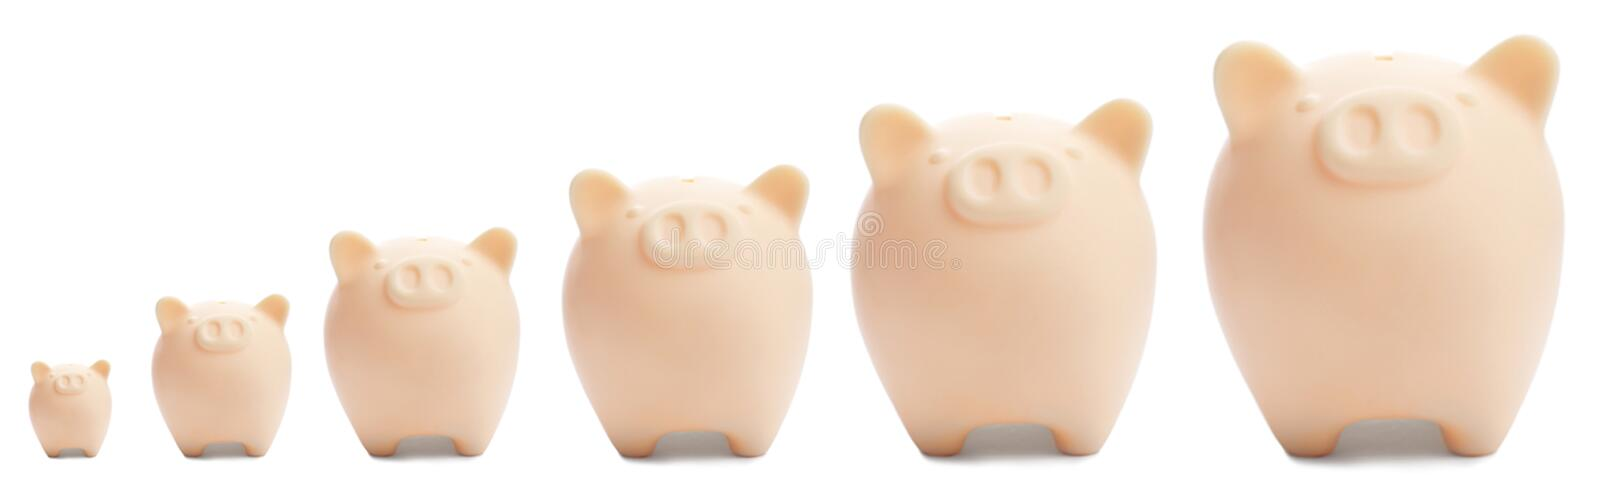 Set with different sized beige piggy banks royalty free stock photos